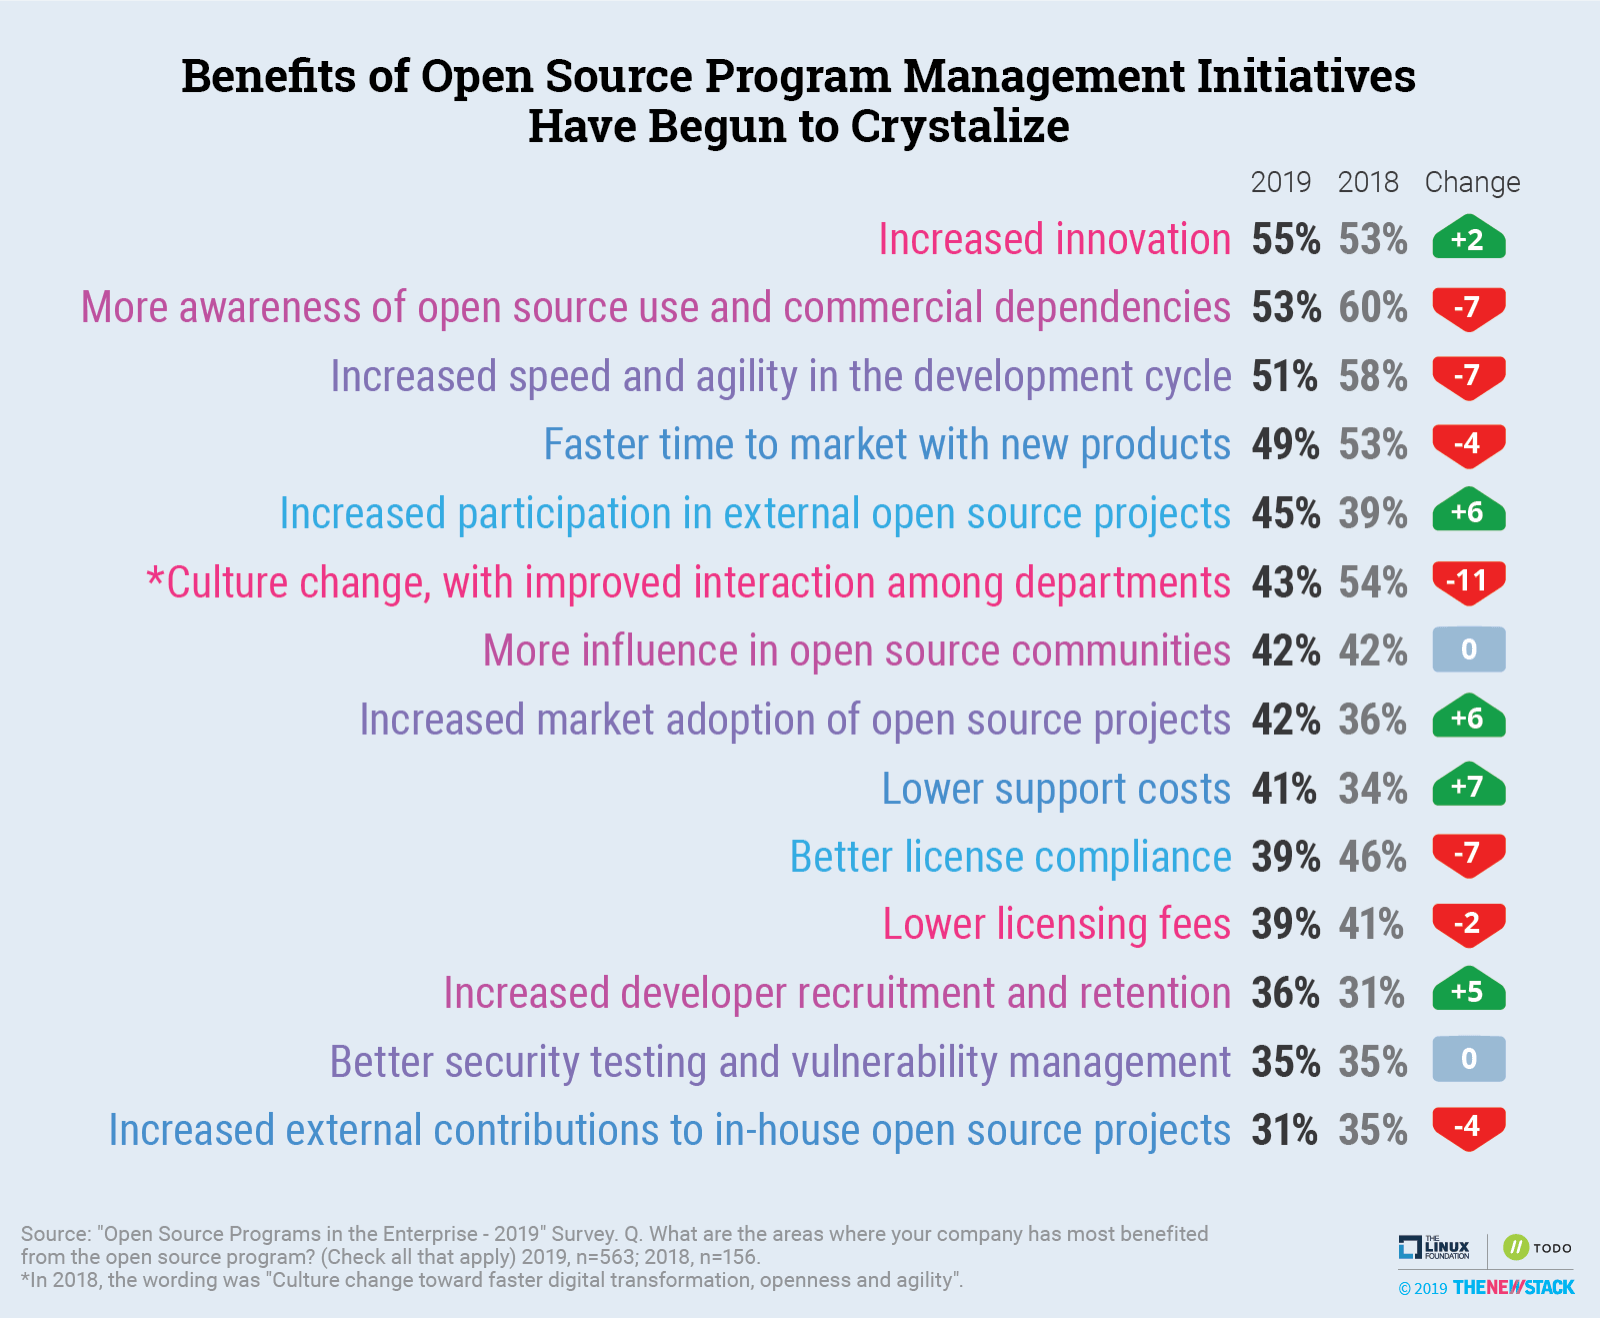 Benefits of open source program management initiatives have begun to crystalize.